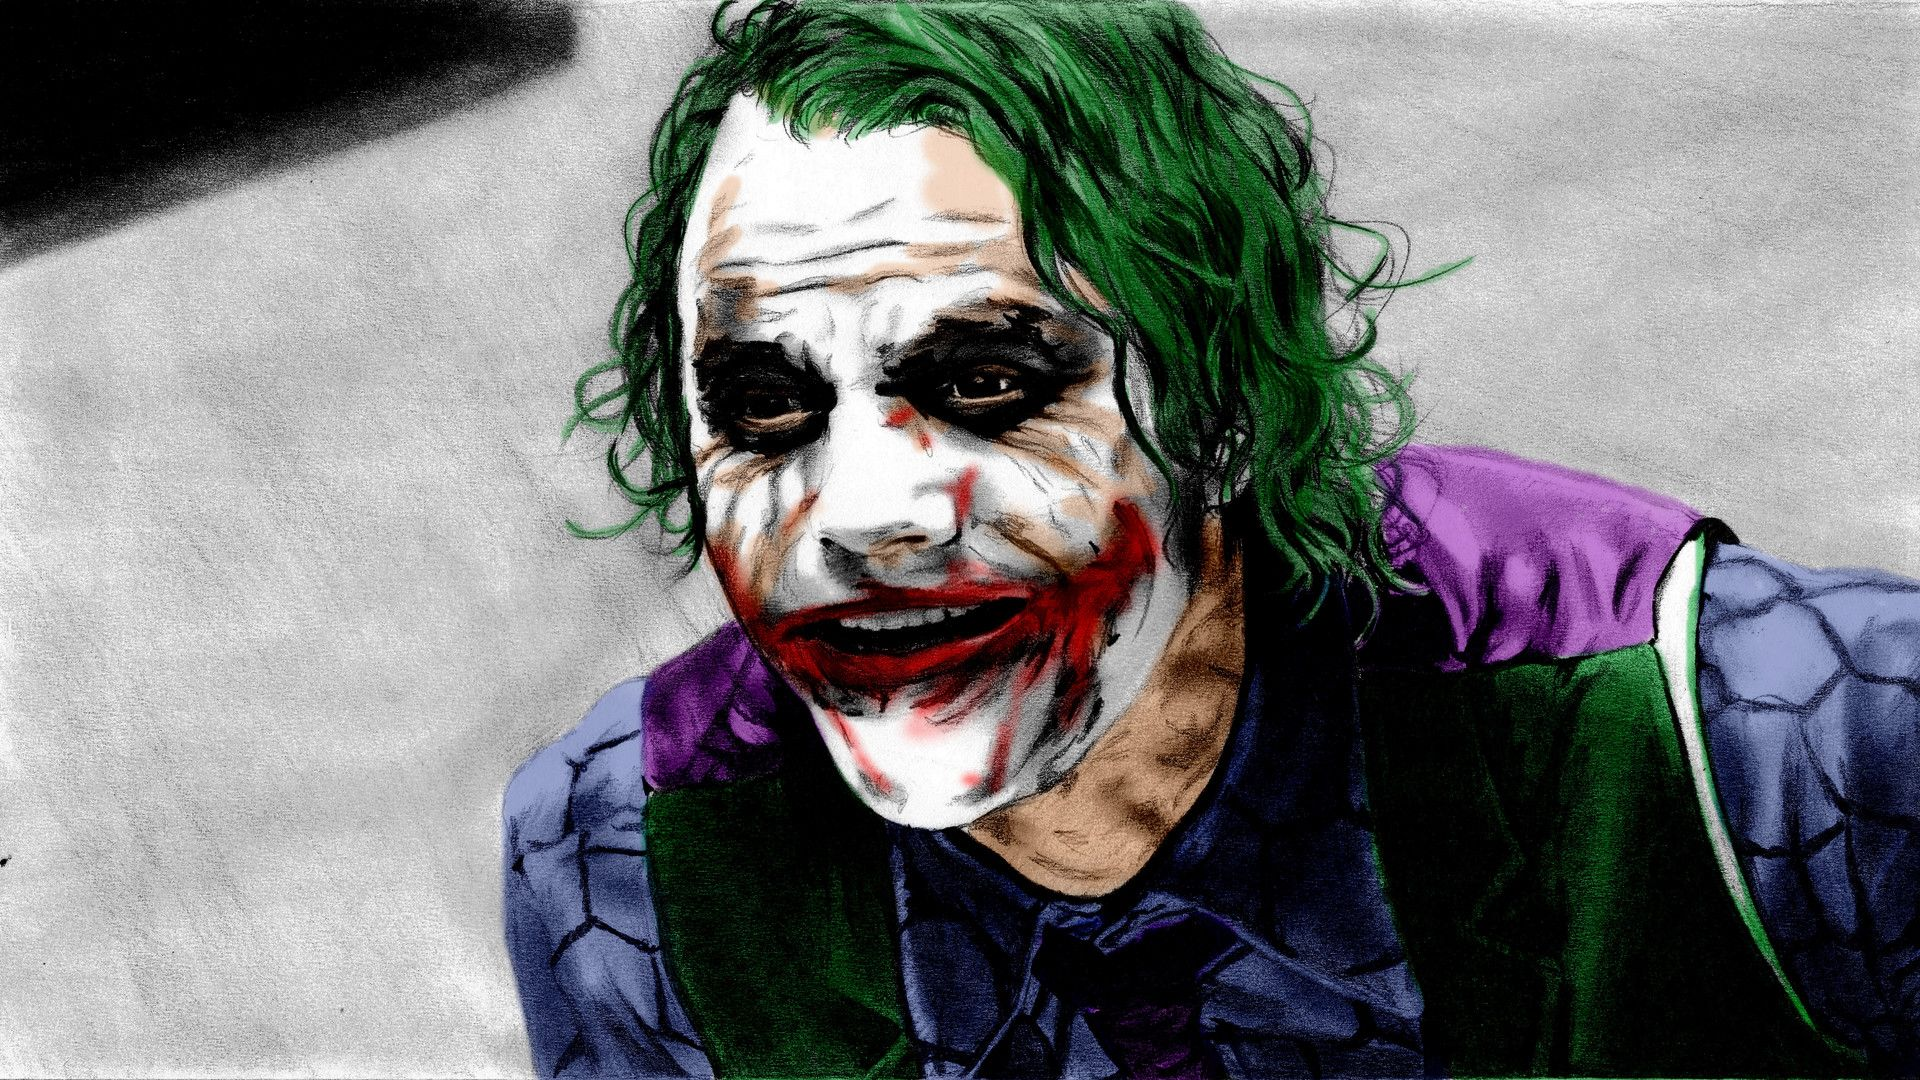 HD Dark Knight Joker Wallpaper Hd Download For Android Mobile Images